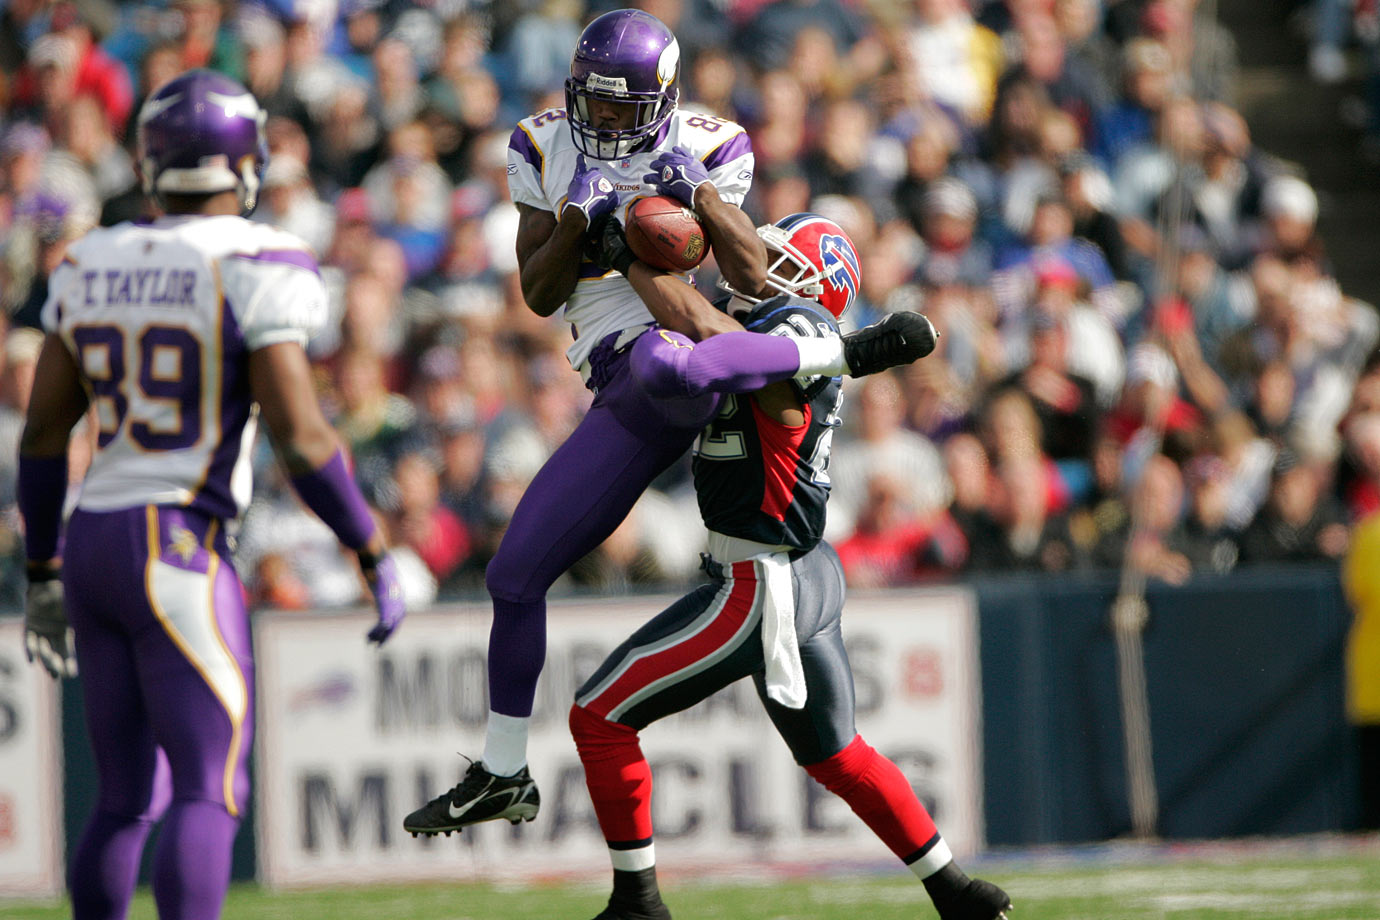 "The Vikings had a need for speed in their receiver corps after trading Randy Moss to the Raiders in 2005, so they took former South Carolina star Troy Williamson with the No. 7 pick. At 6'1"" and 203 pounds, and running a 4.28 40-yard dash at the scouting combine, Williamson seemed to have all the base attributes for NFL success. Except for one thing: he couldn't catch the ball. He dropped 11 passes in his rookie season to the 24 he actually caught, and his career catch rate with the Vikings was an absurdly low 47.3%. Williamson famously blamed this on depth perception issues, and then even more famously challenged then-Vikings head coach Brad Childress to a fight after he was traded to Jacksonville. Williamson left the game with 87 catches for 1,131 yards and four touchdowns in his NFL career."